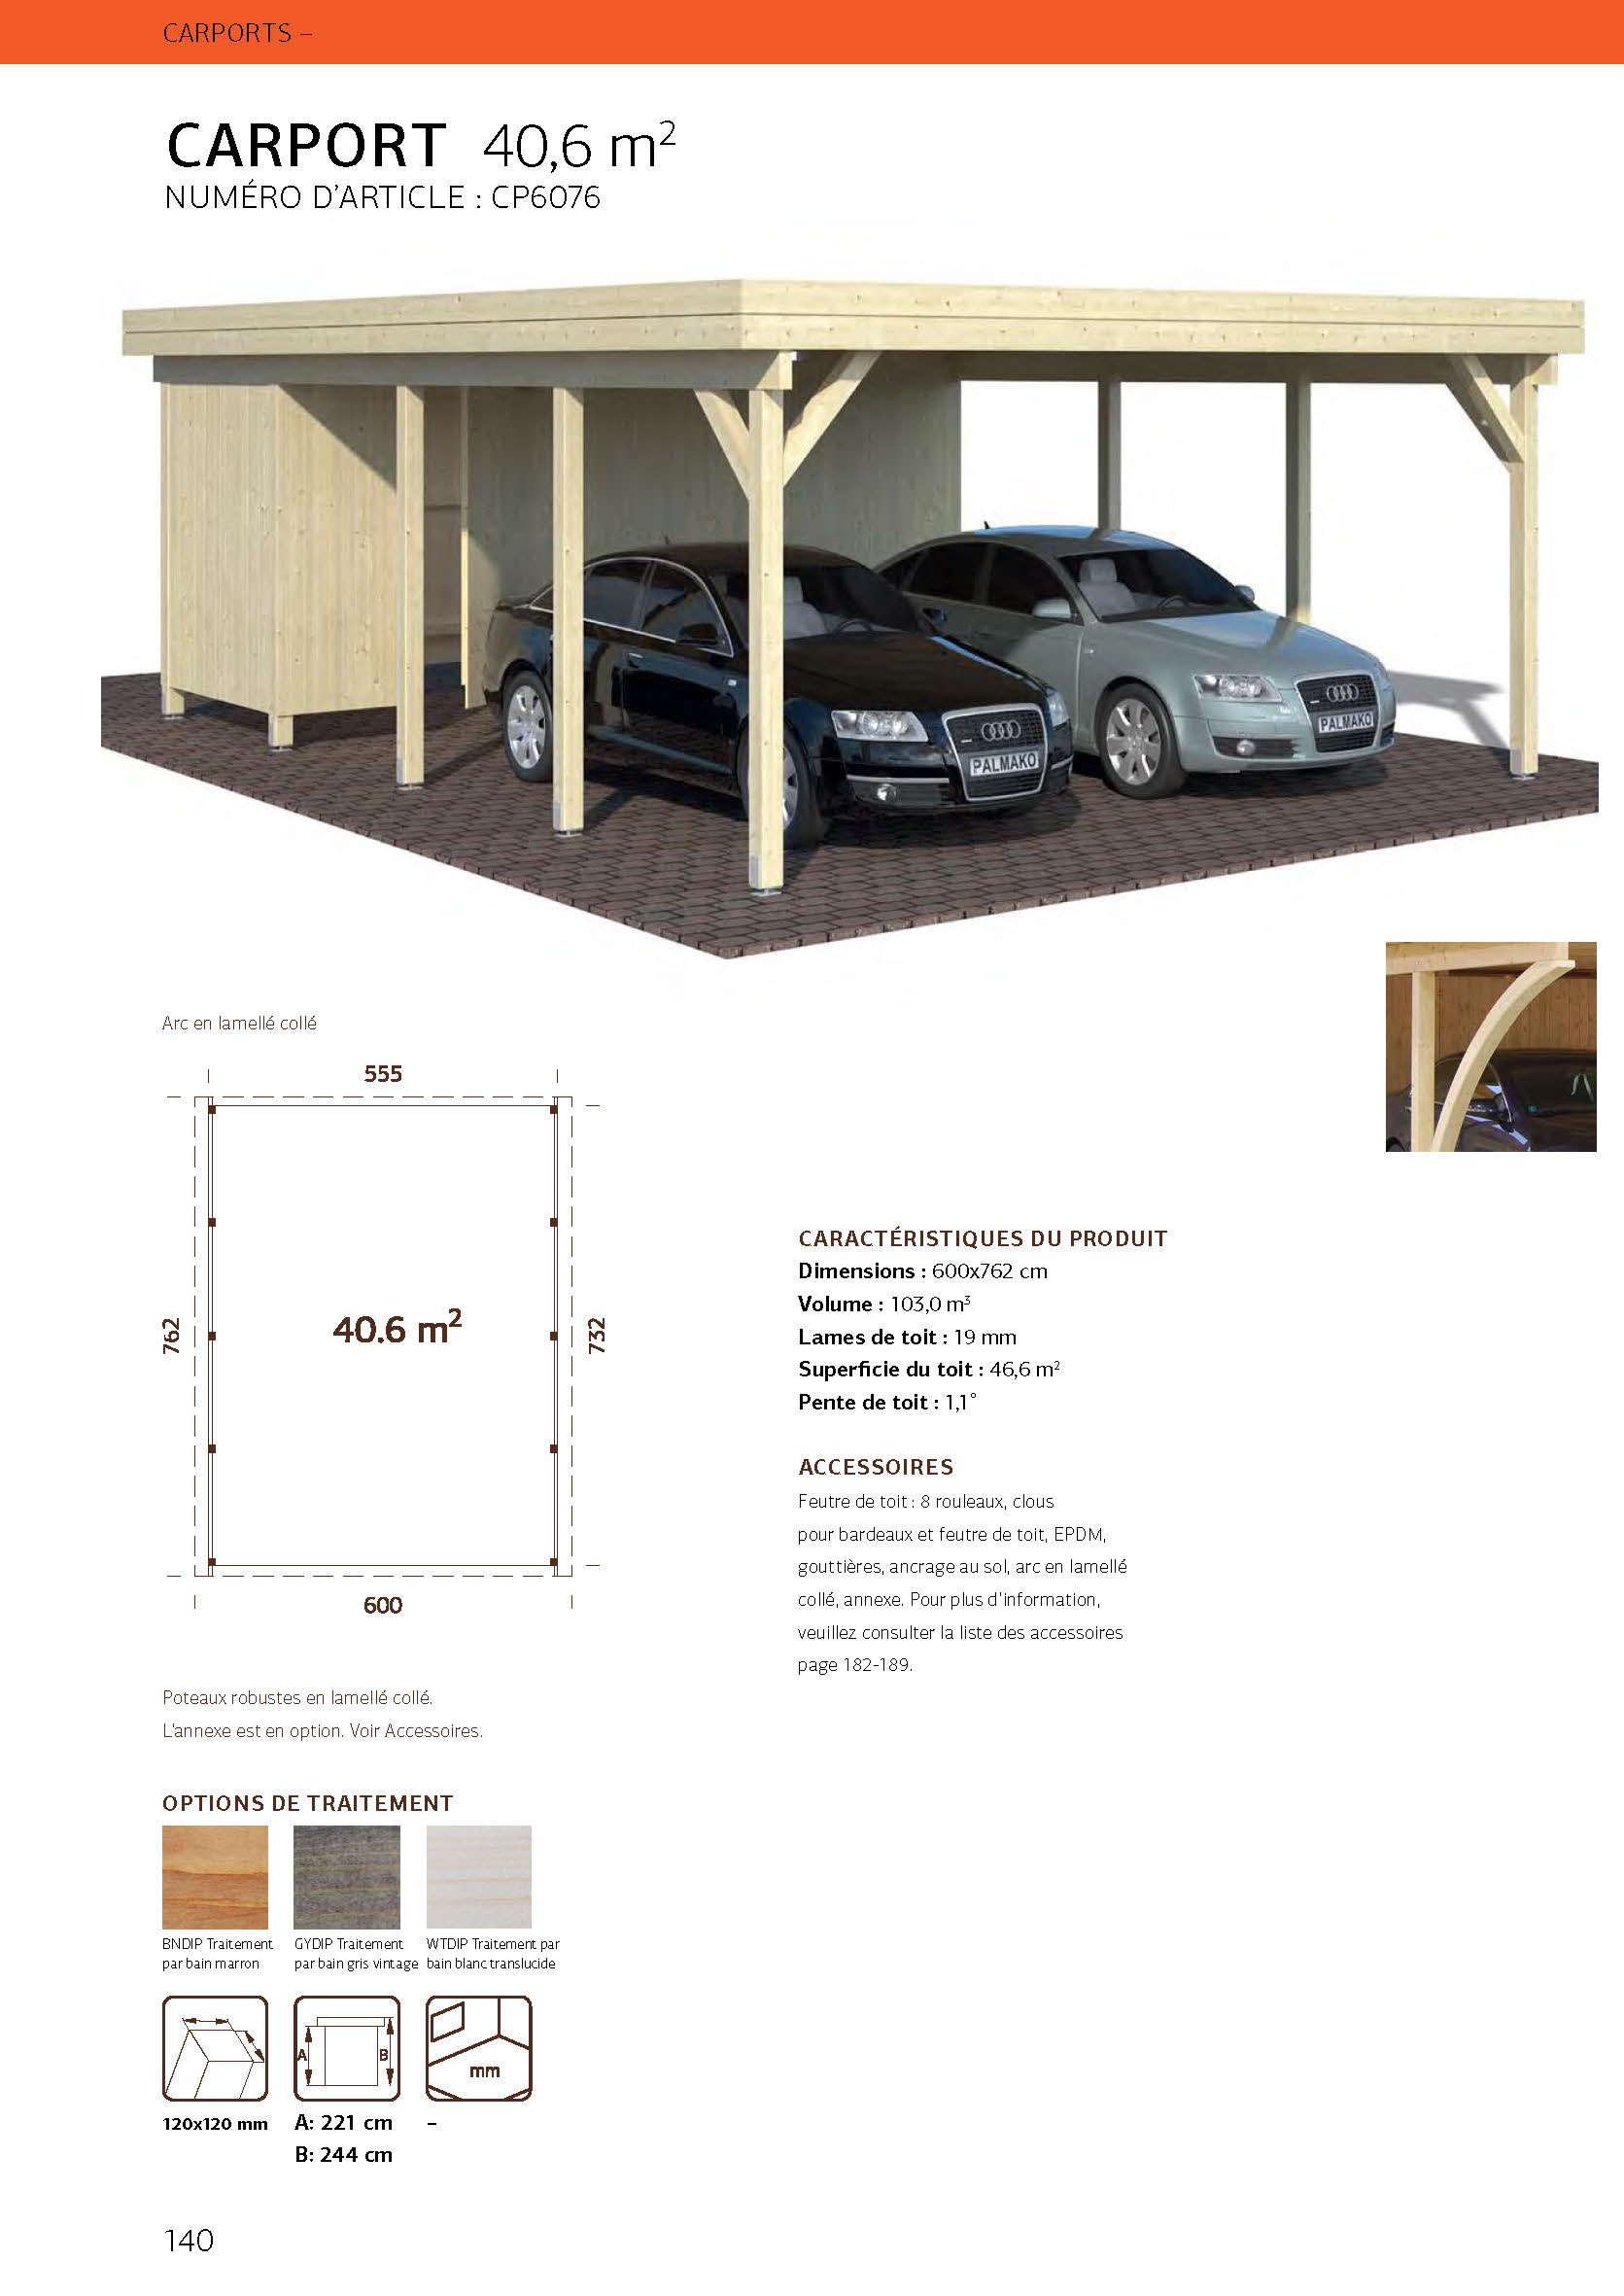 carport catalogue_2017_web_fr_Page_14